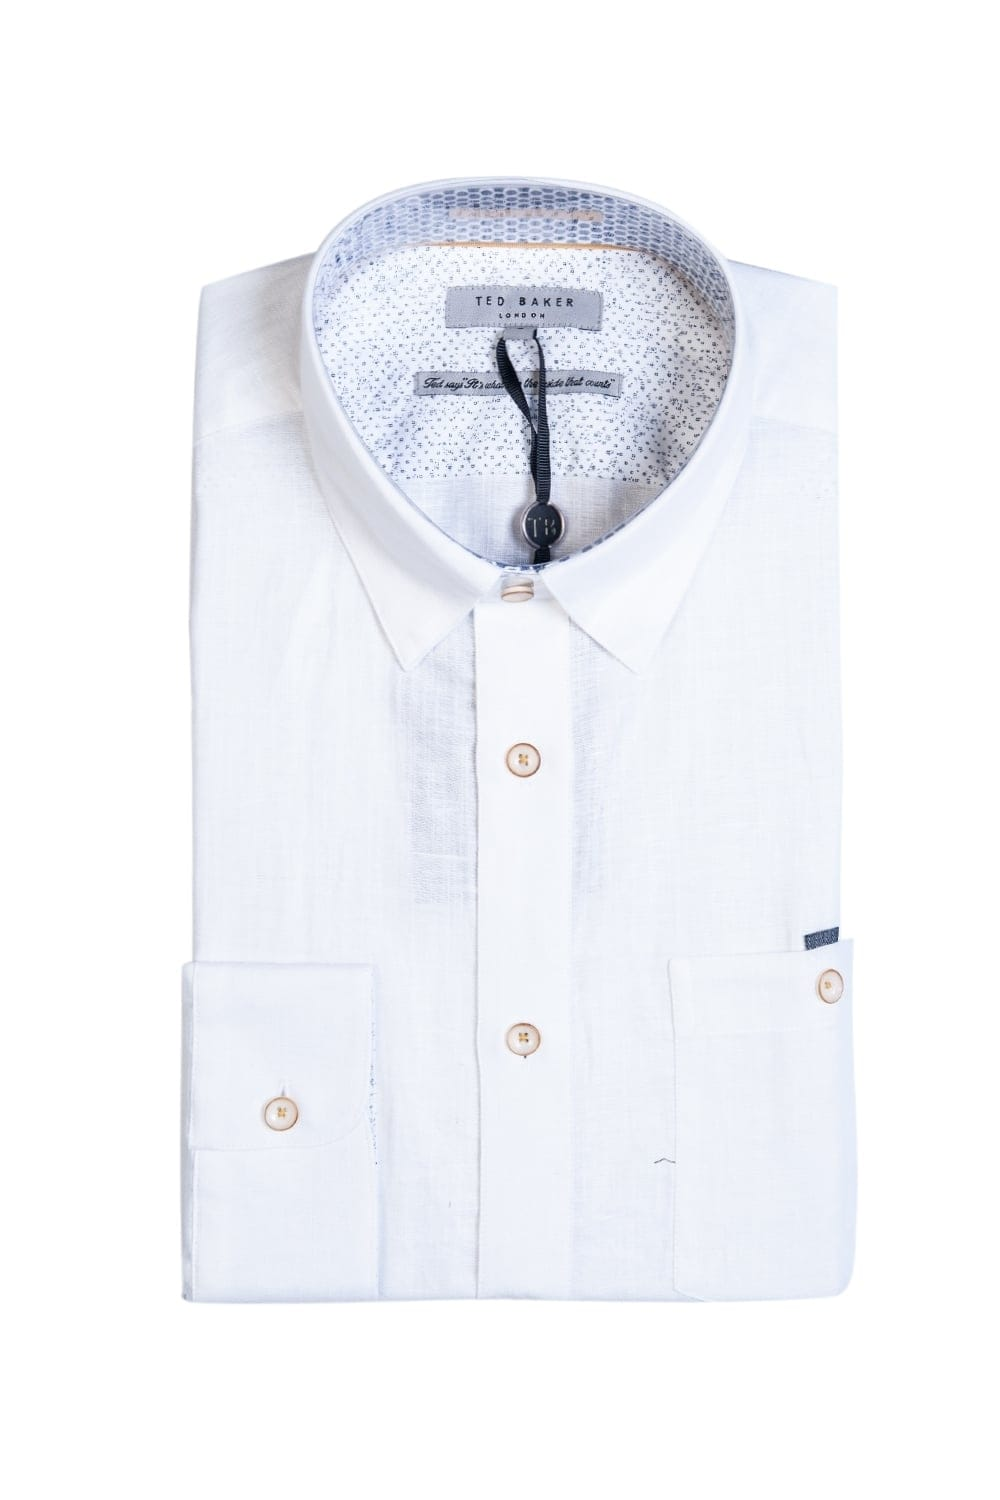 449b37355d795 Ted Baker Linen Shirt TS7M GA60 LAAVATO 99 - Clothing from Sage ...